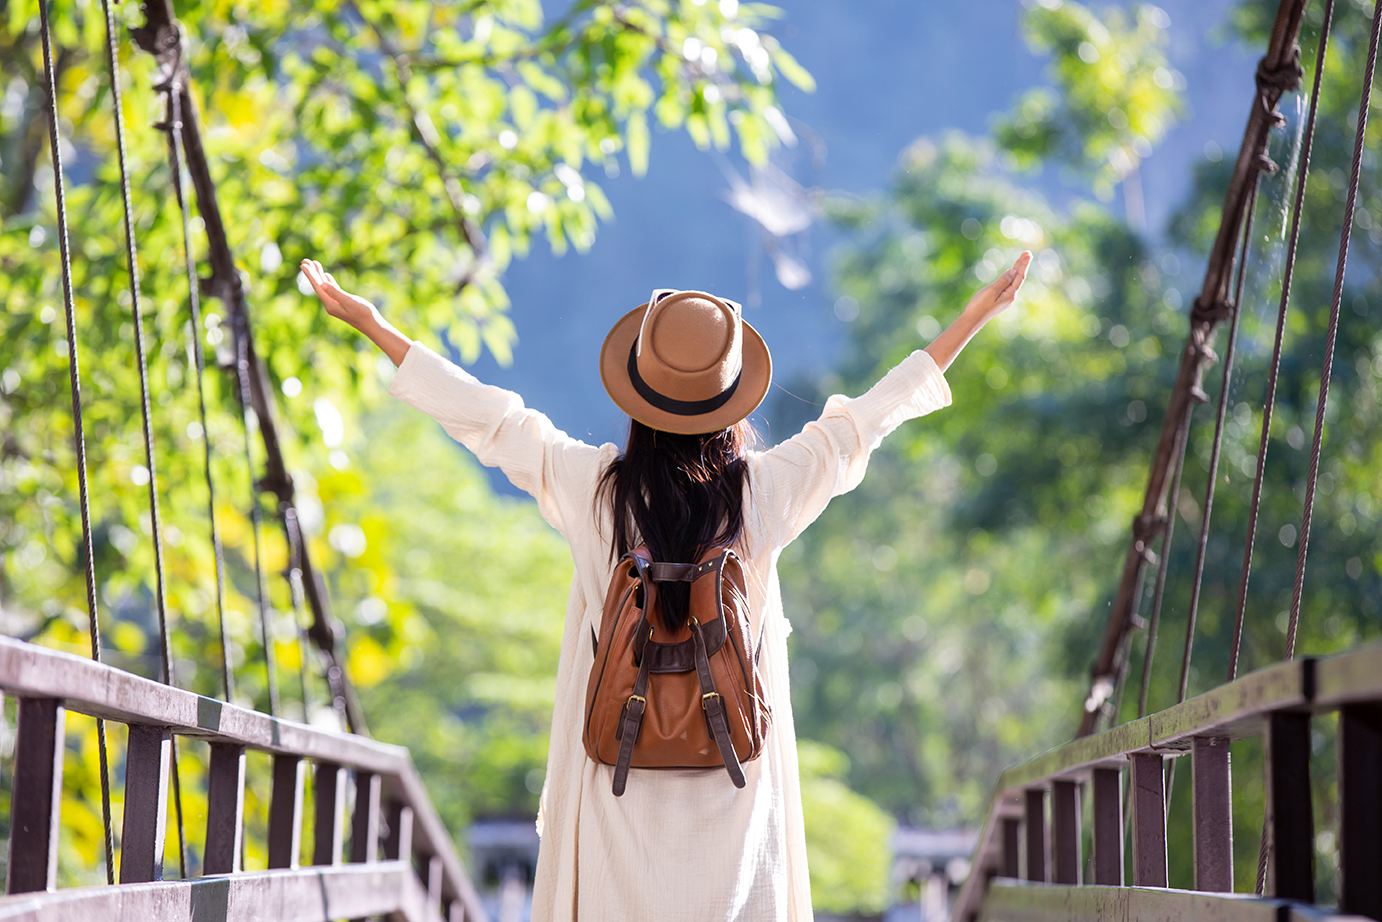 Female tourists spread their arms and held their wings, smiling happily.|open-minded